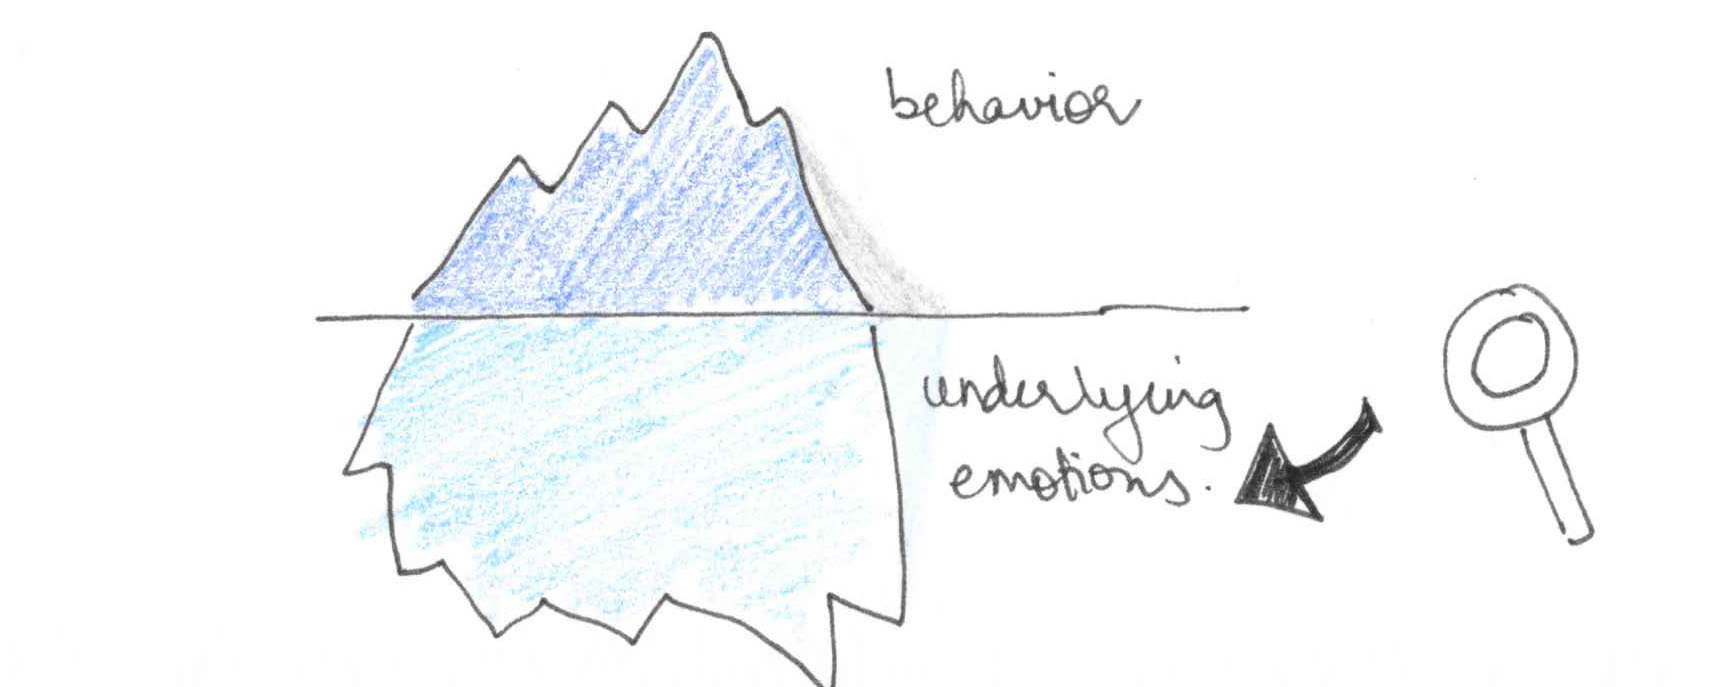 I like to dig into emotions underlying behaviors